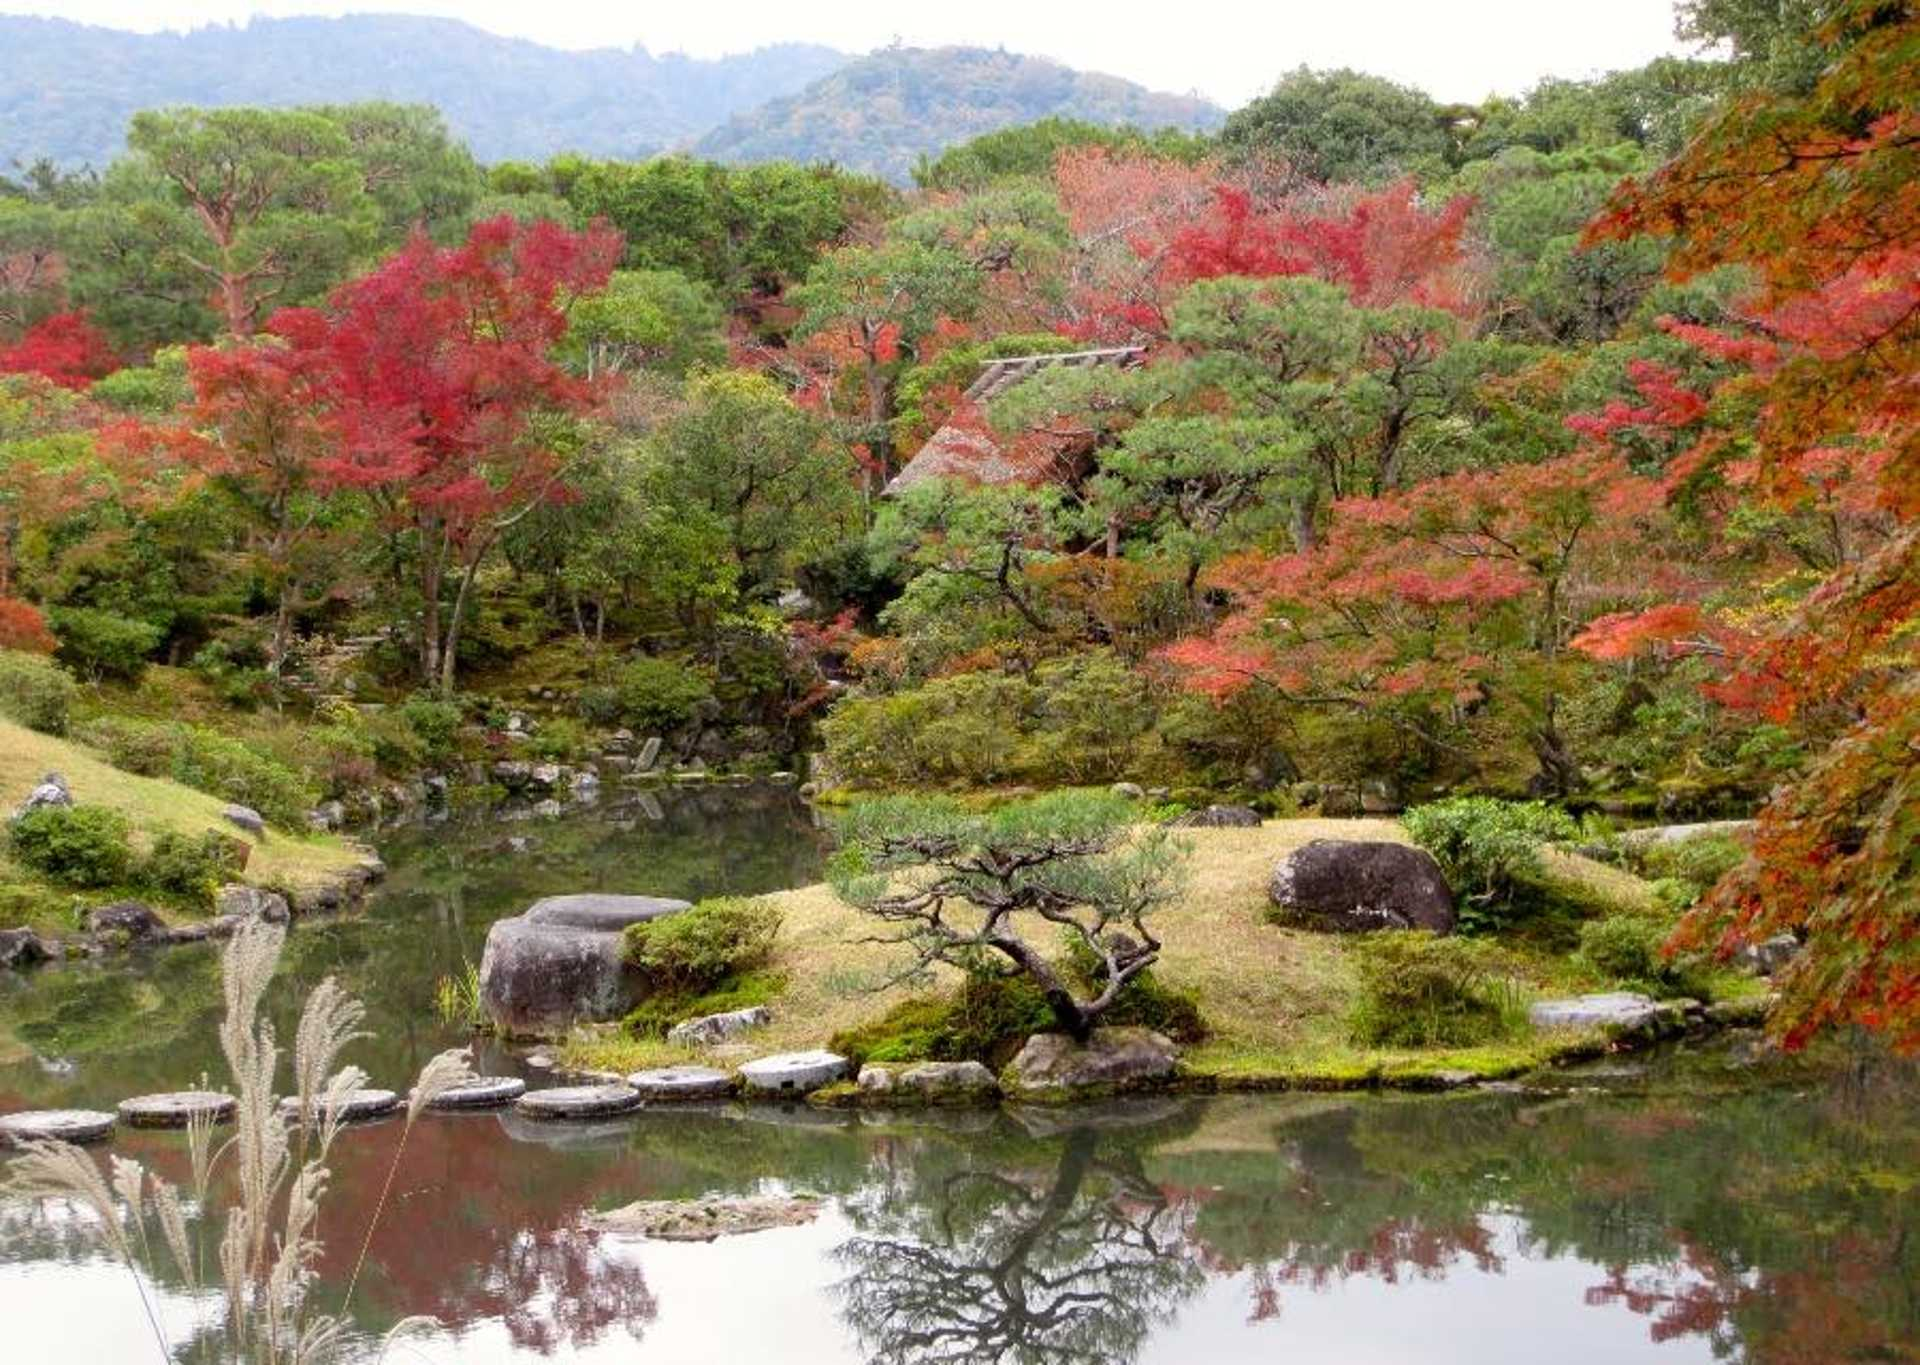 11 - Get lost in the temple gardens of Nara and Kamakura